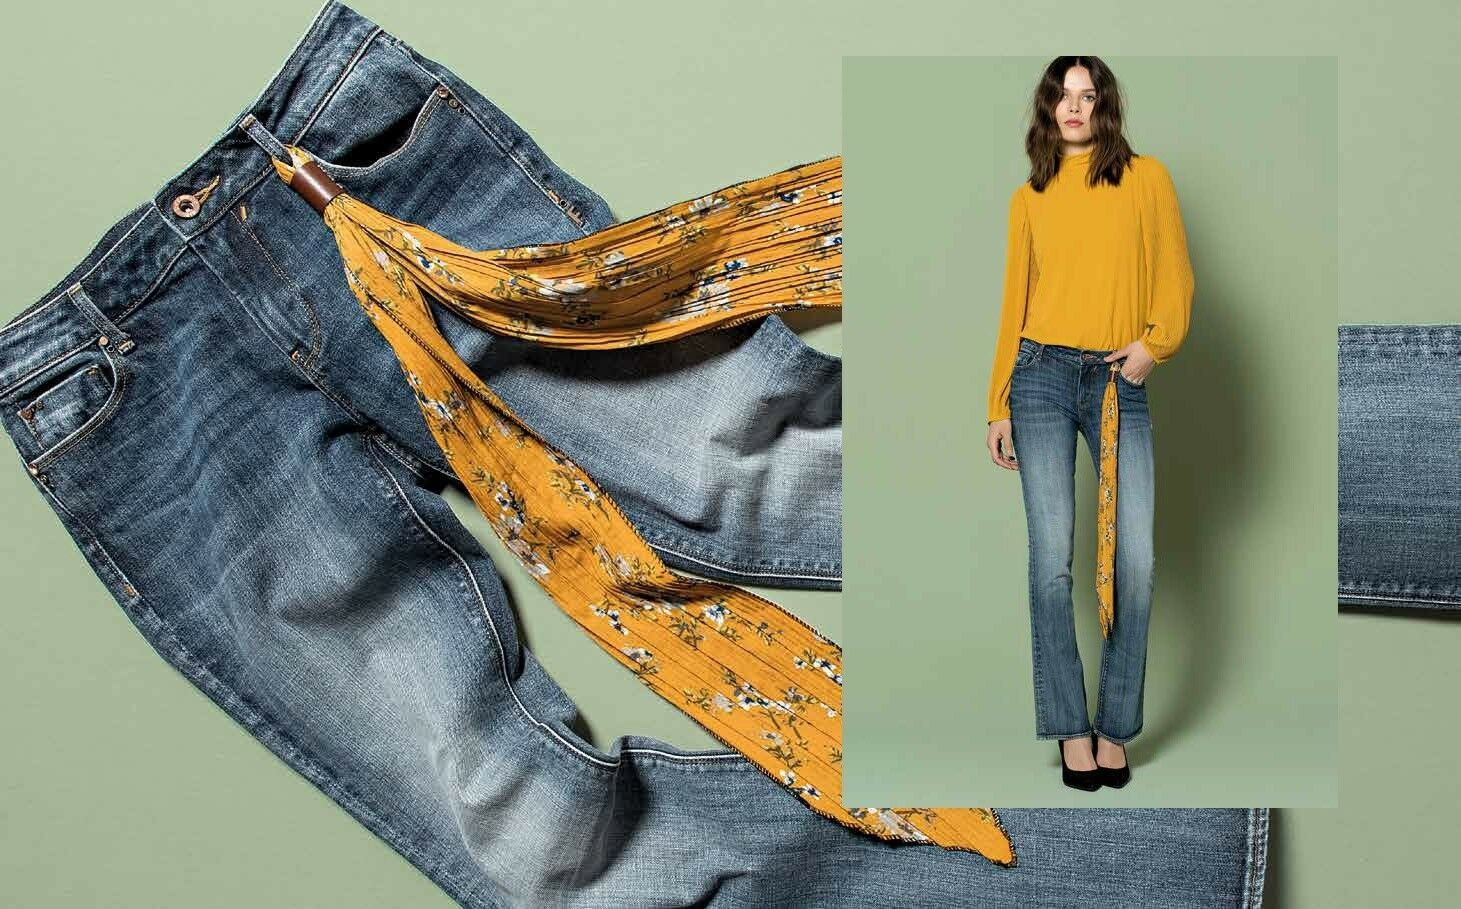 JEANS JEANS JEANS avvioCUT FRACOMINA FR18FPJHoroIE Dimensione 29,30 e728dd